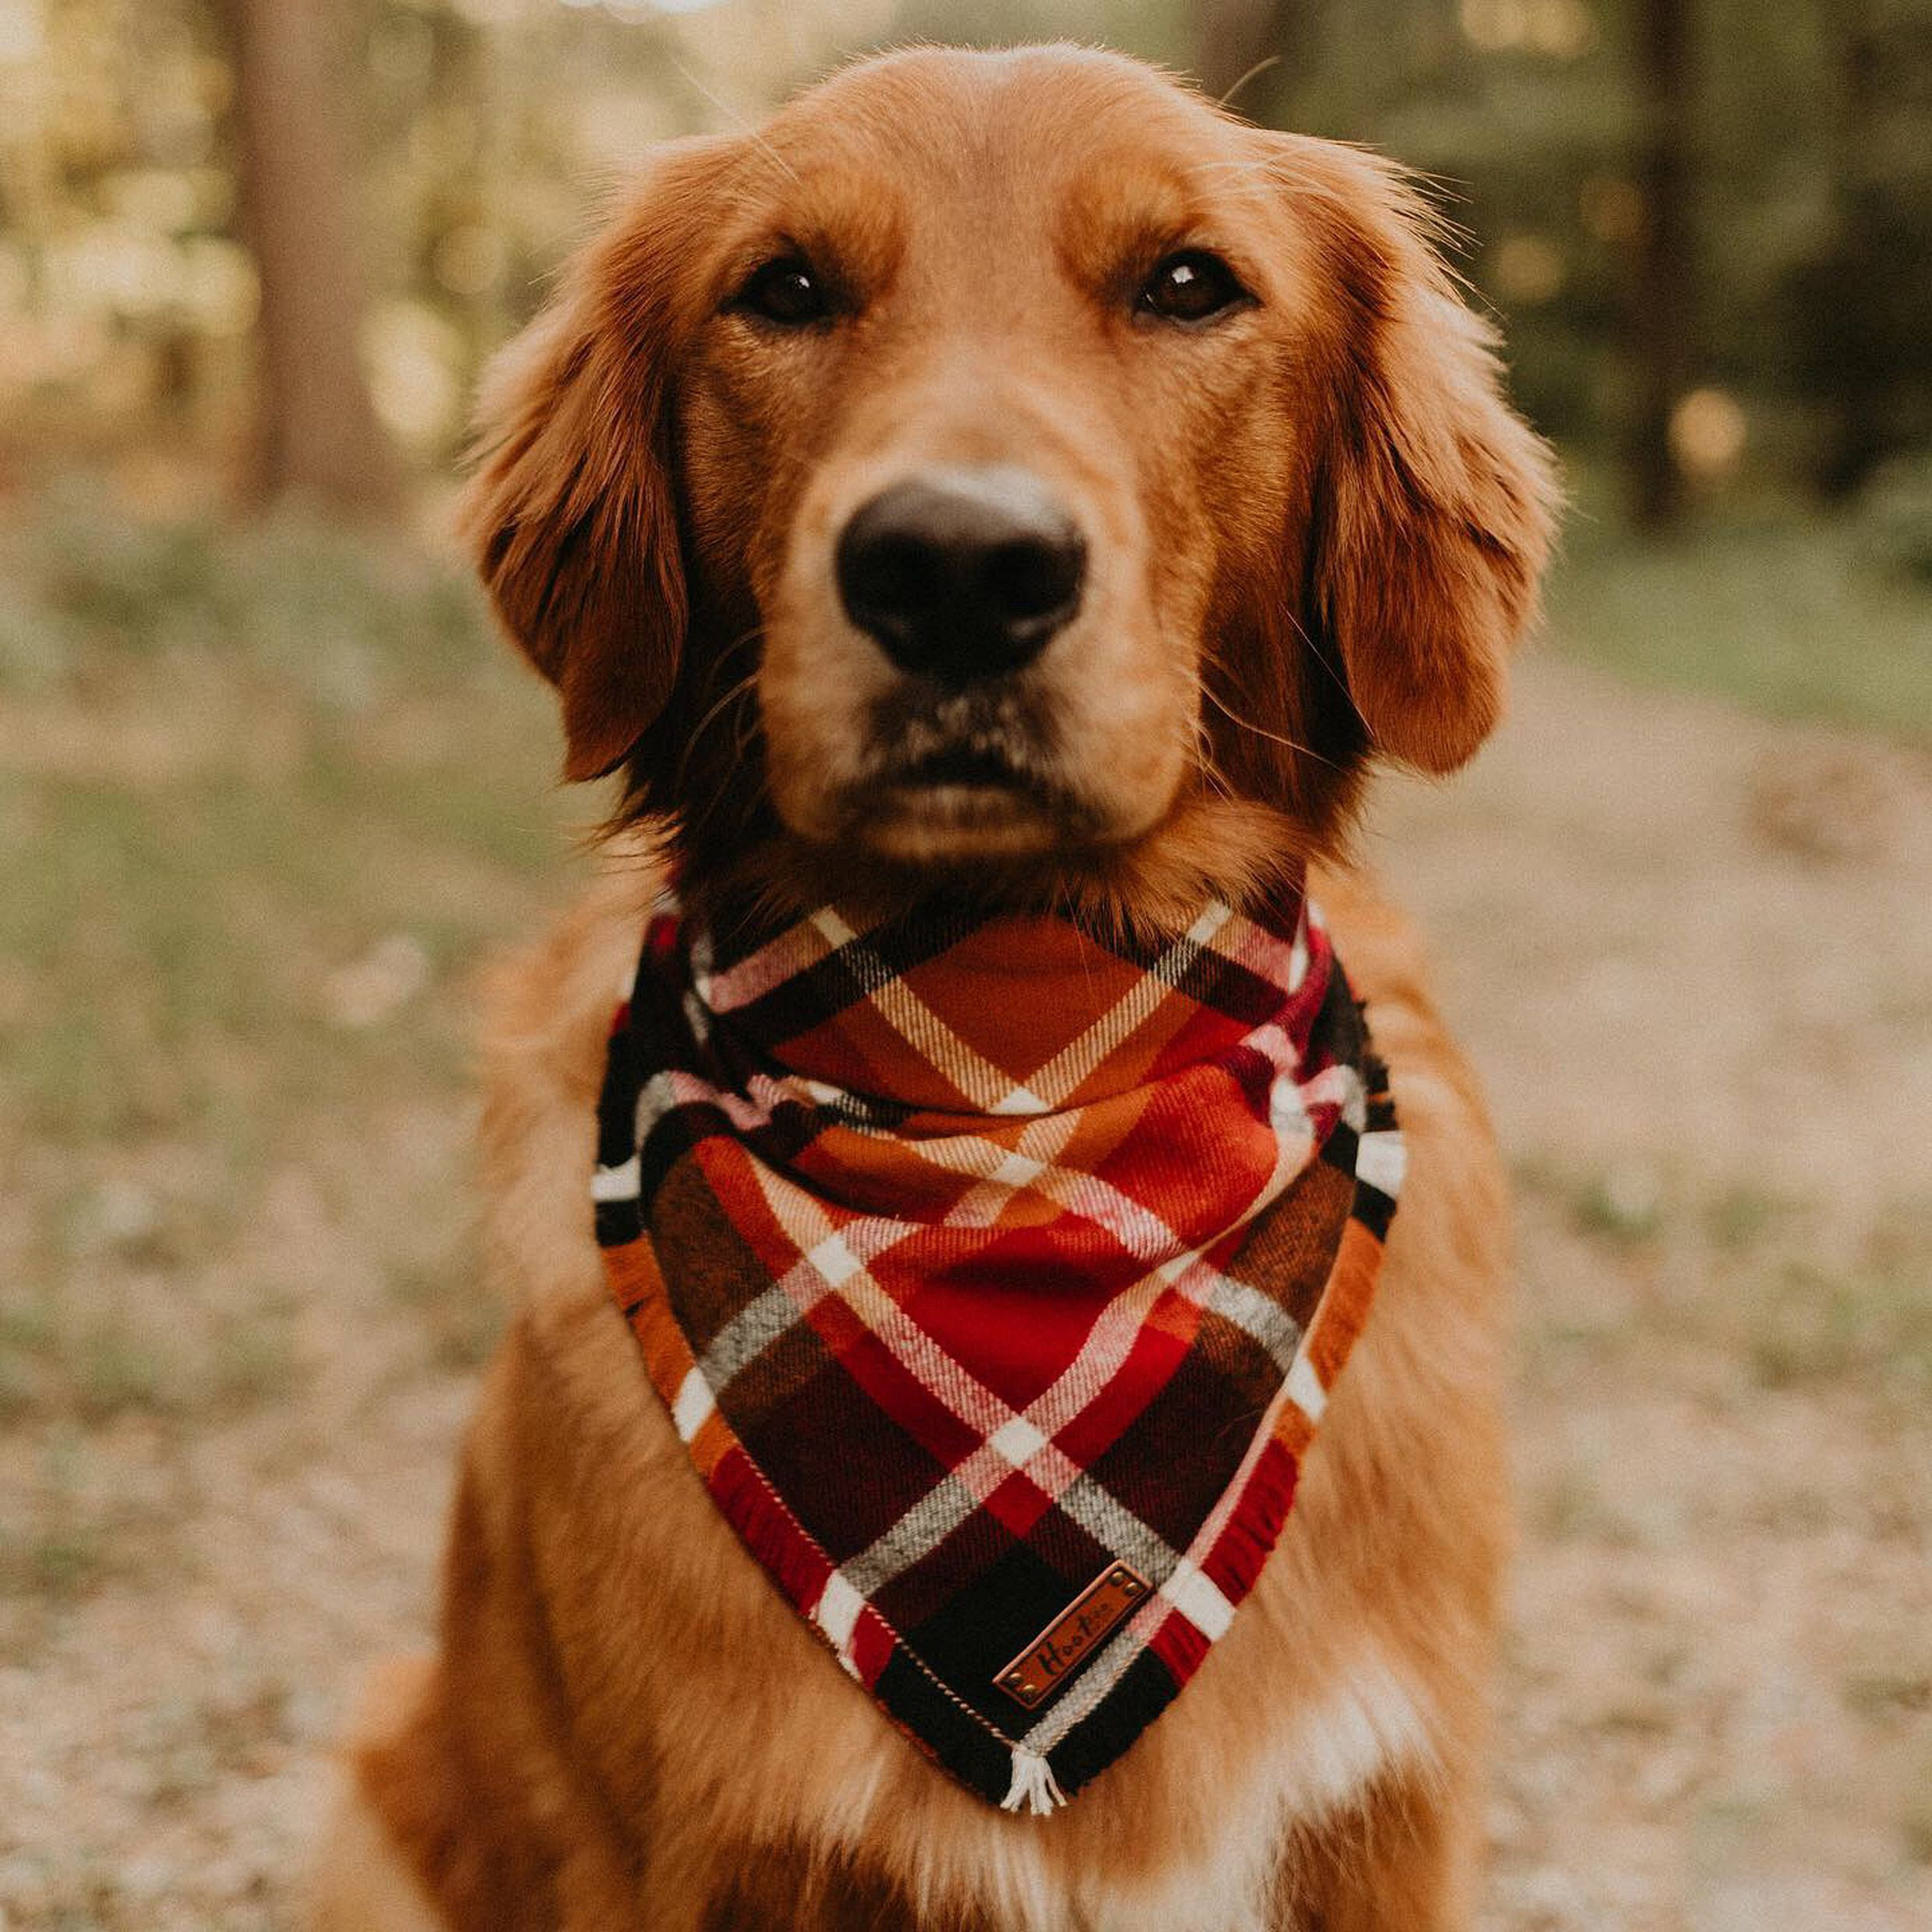 Dark Red Golden Retriever Golden Retriever Dogs That Hike Hiking Dogs Of Instagram Dogs On Adventures Dog In 2020 Cute Dog Toys Outdoor Dog Toys Black Dogs Breeds